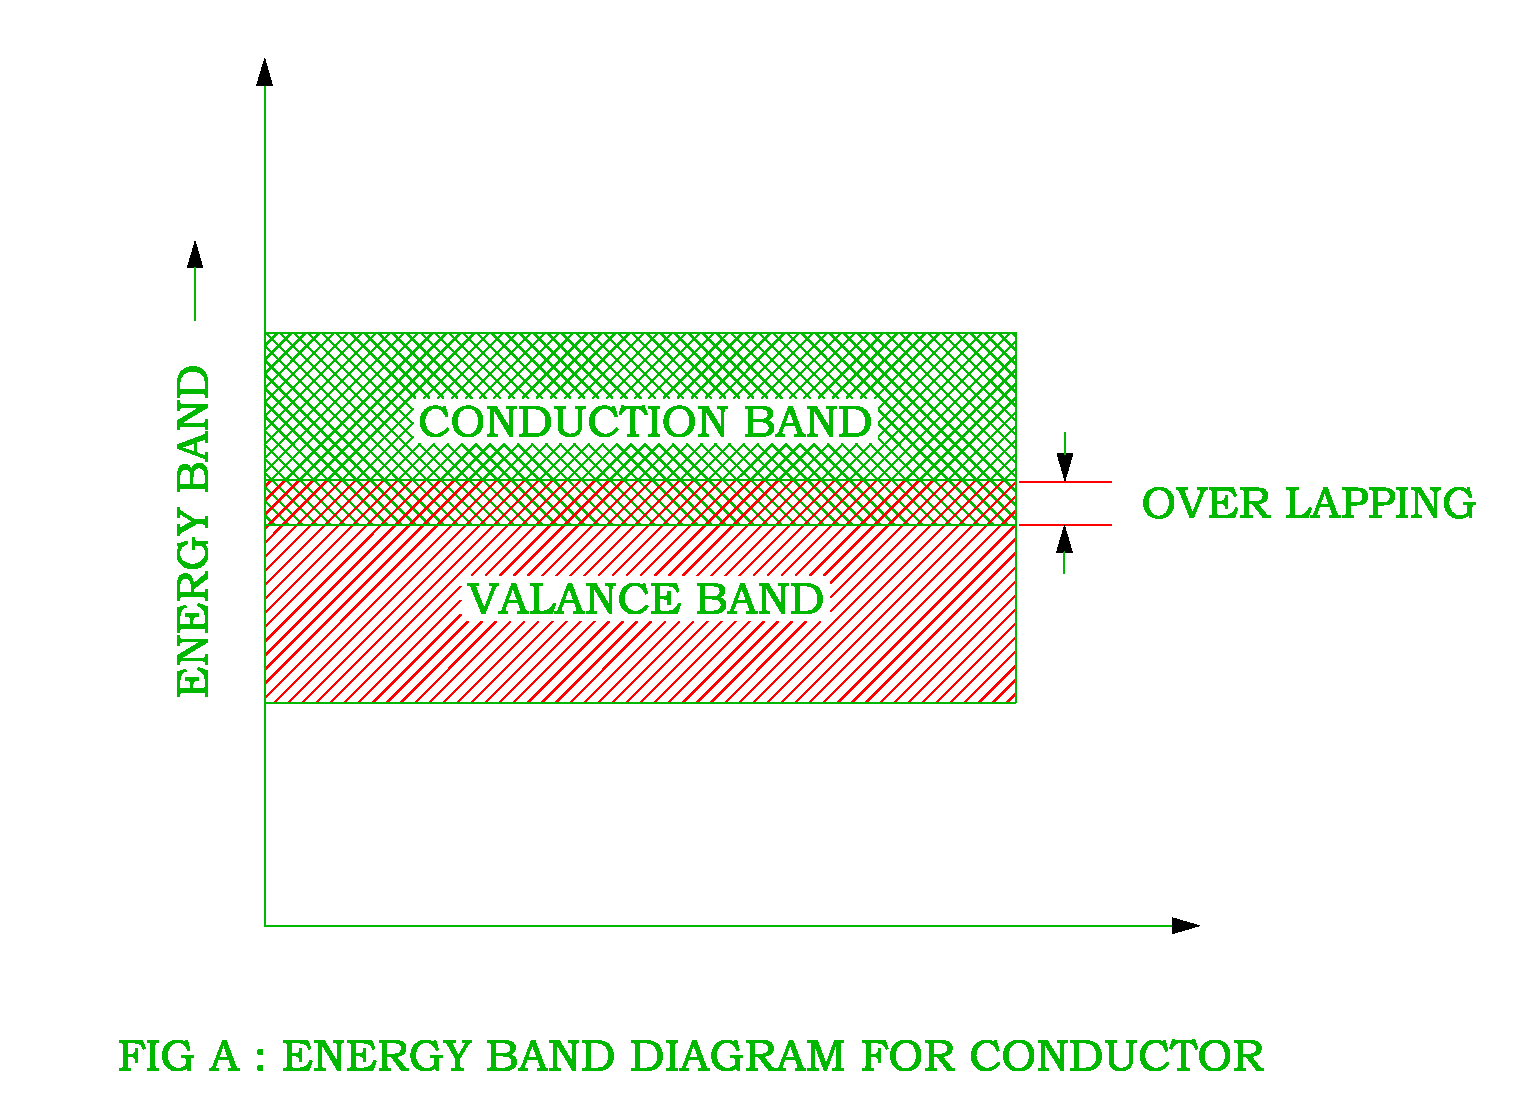 energy band diagram for conductors insulators and semiconductors hella supertone wiring diagaram conductor semiconductor